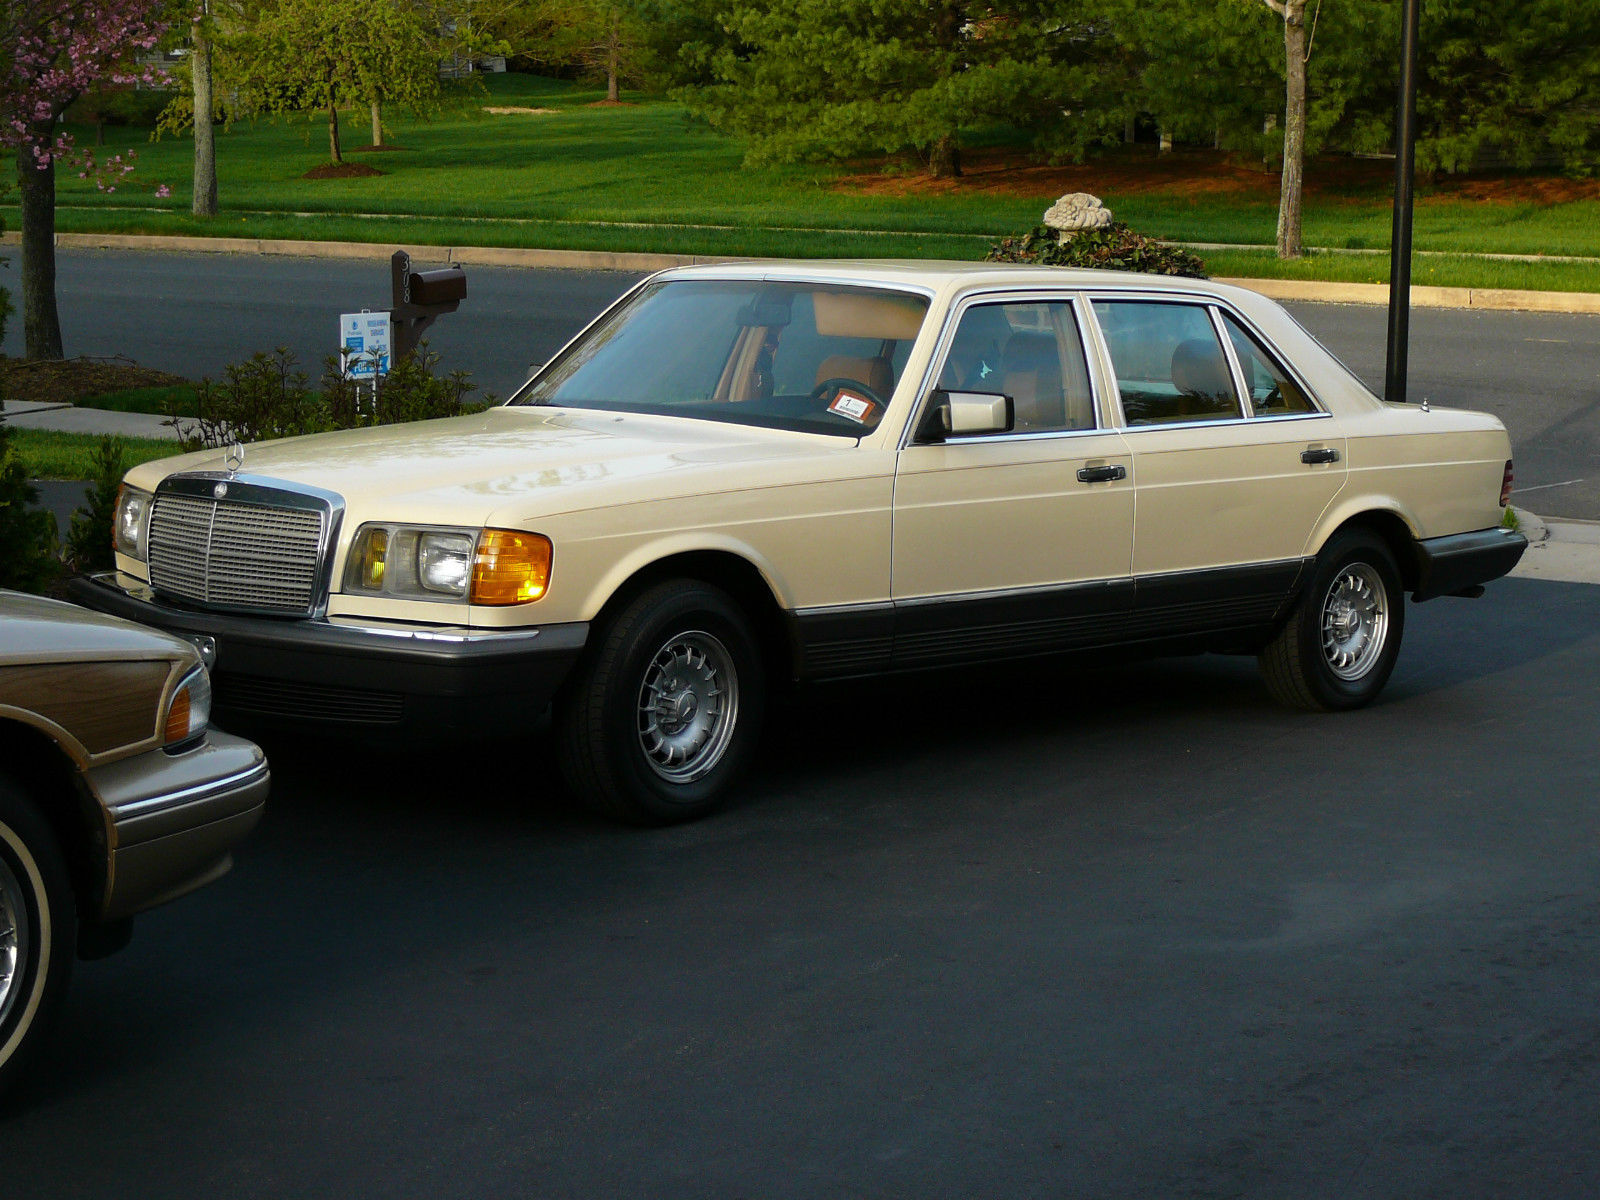 1981 mercedes benz 380sel classic mercedes benz 300 for Benz mercedes for sale